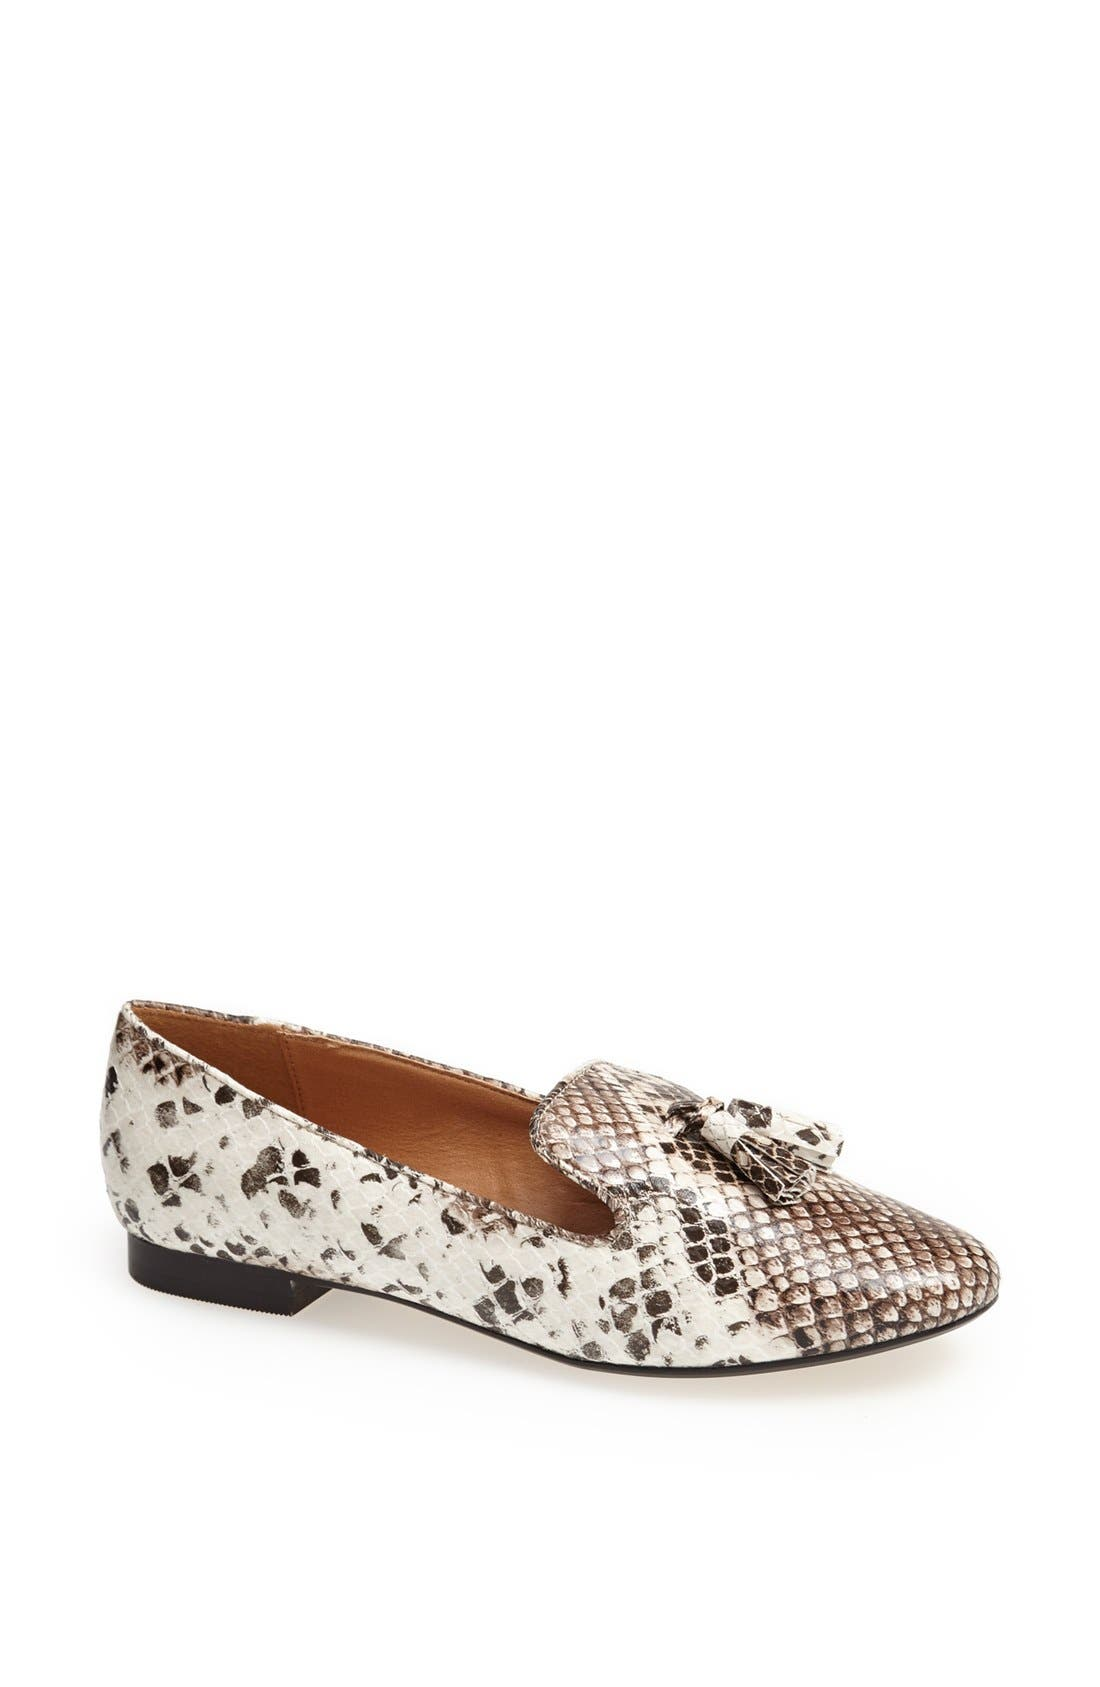 Alternate Image 1 Selected - Topshop 'Marseille' Tassel Flat